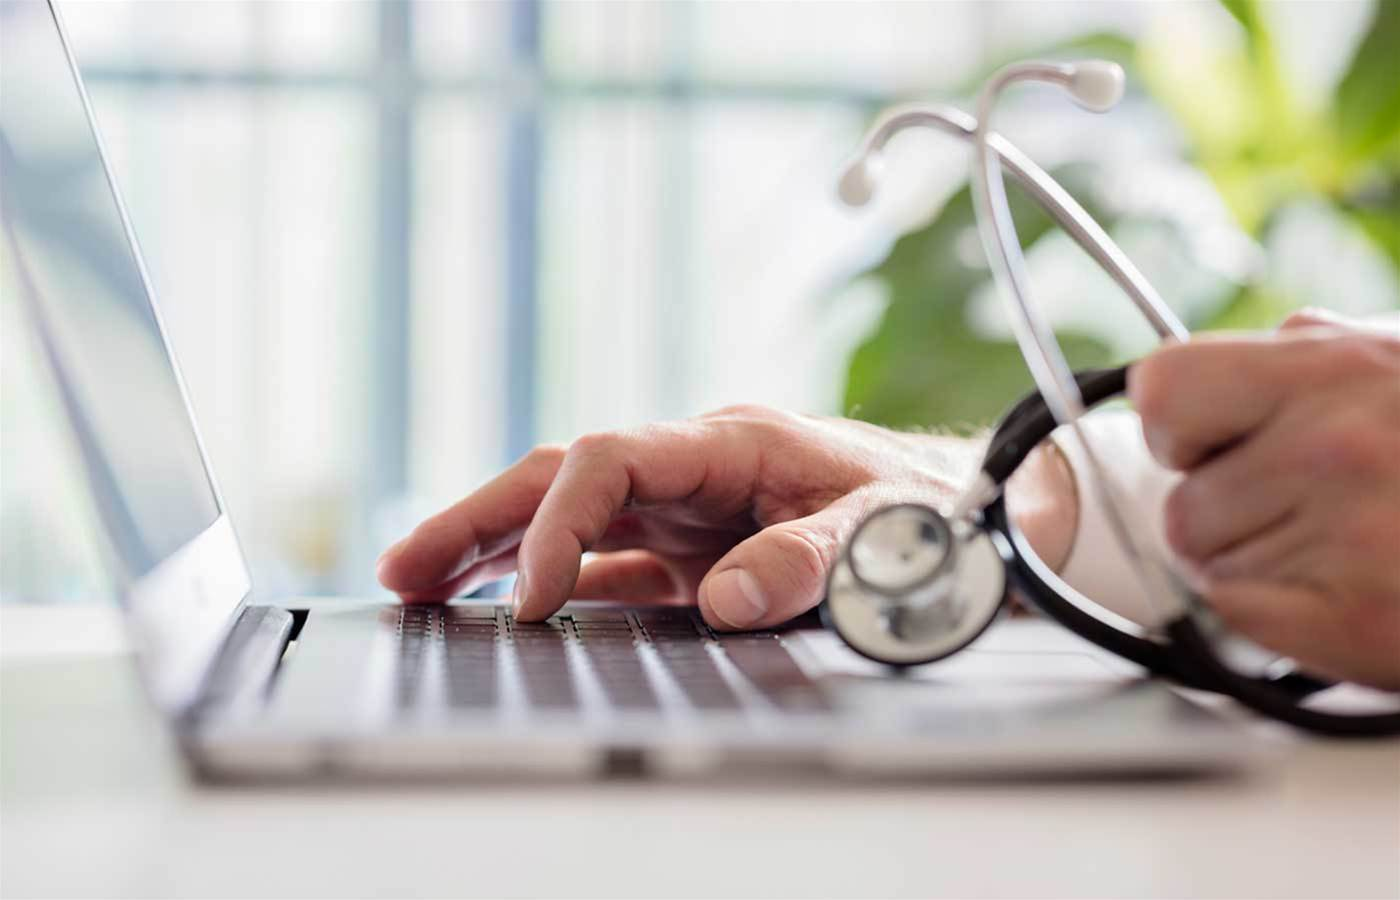 Health sector still plagued by breaches, according to latest OAIC report